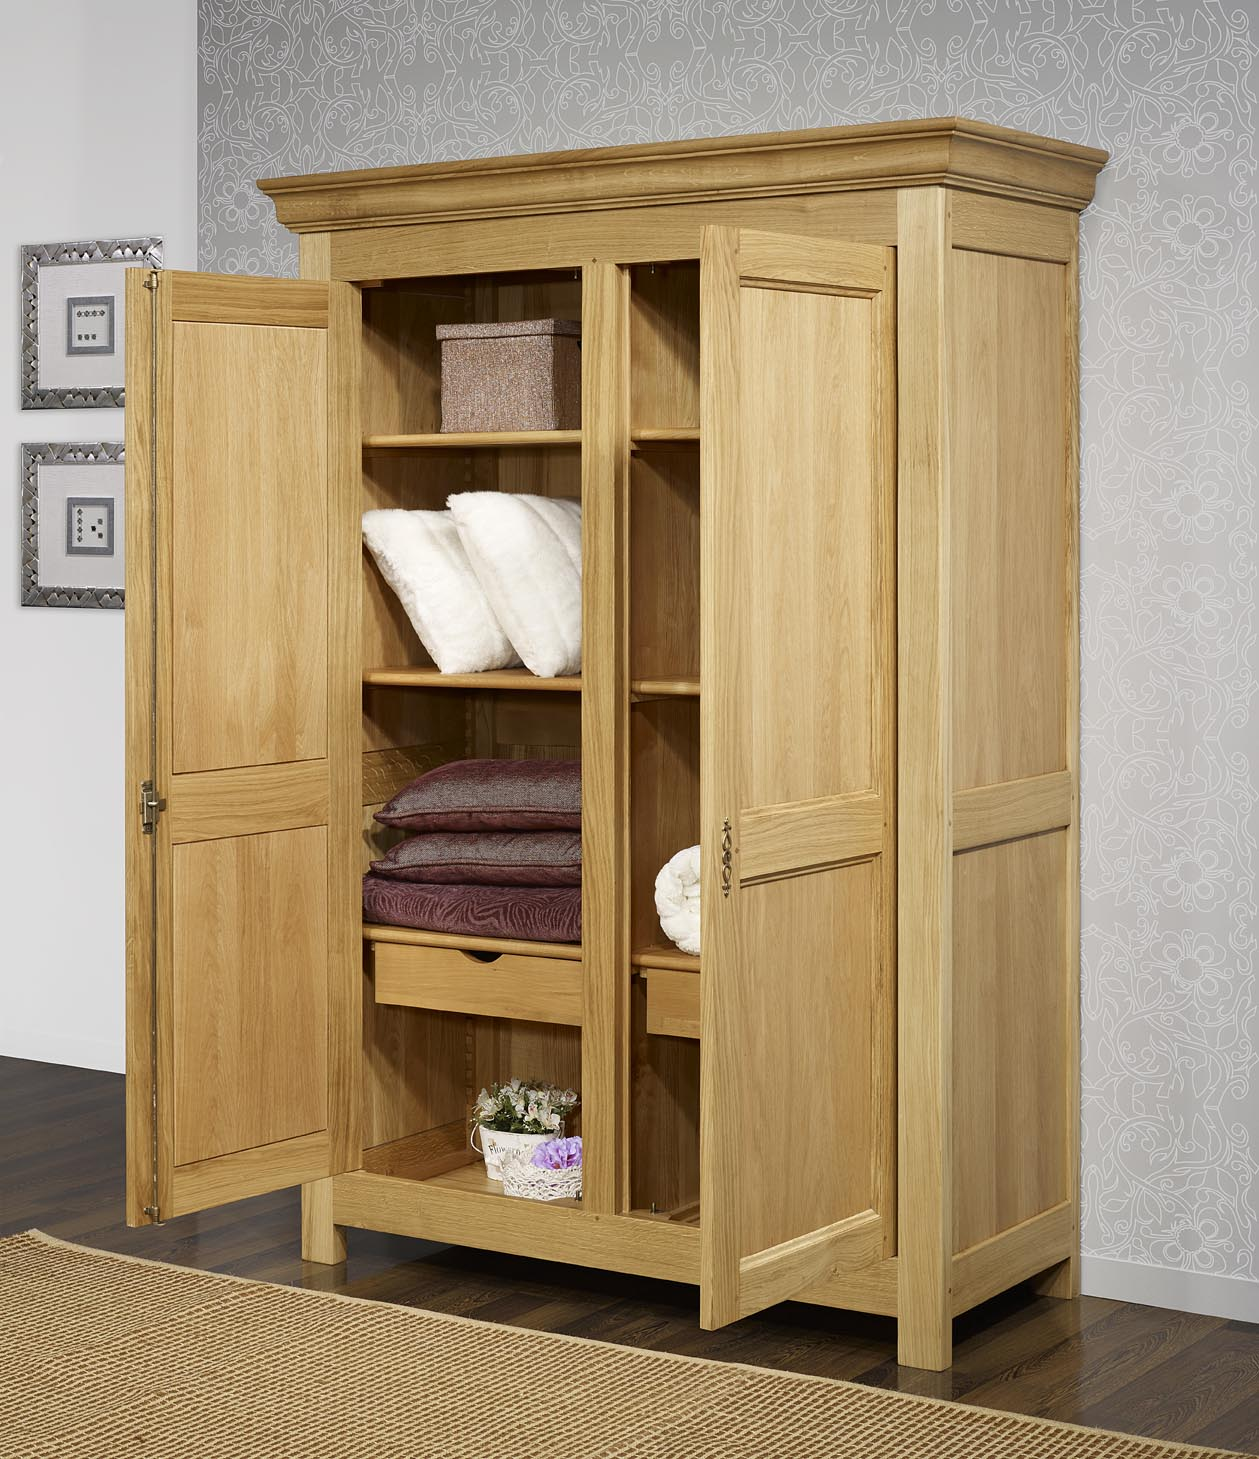 armoire 2 portes en ch ne massif de style campagnard meuble en ch ne. Black Bedroom Furniture Sets. Home Design Ideas